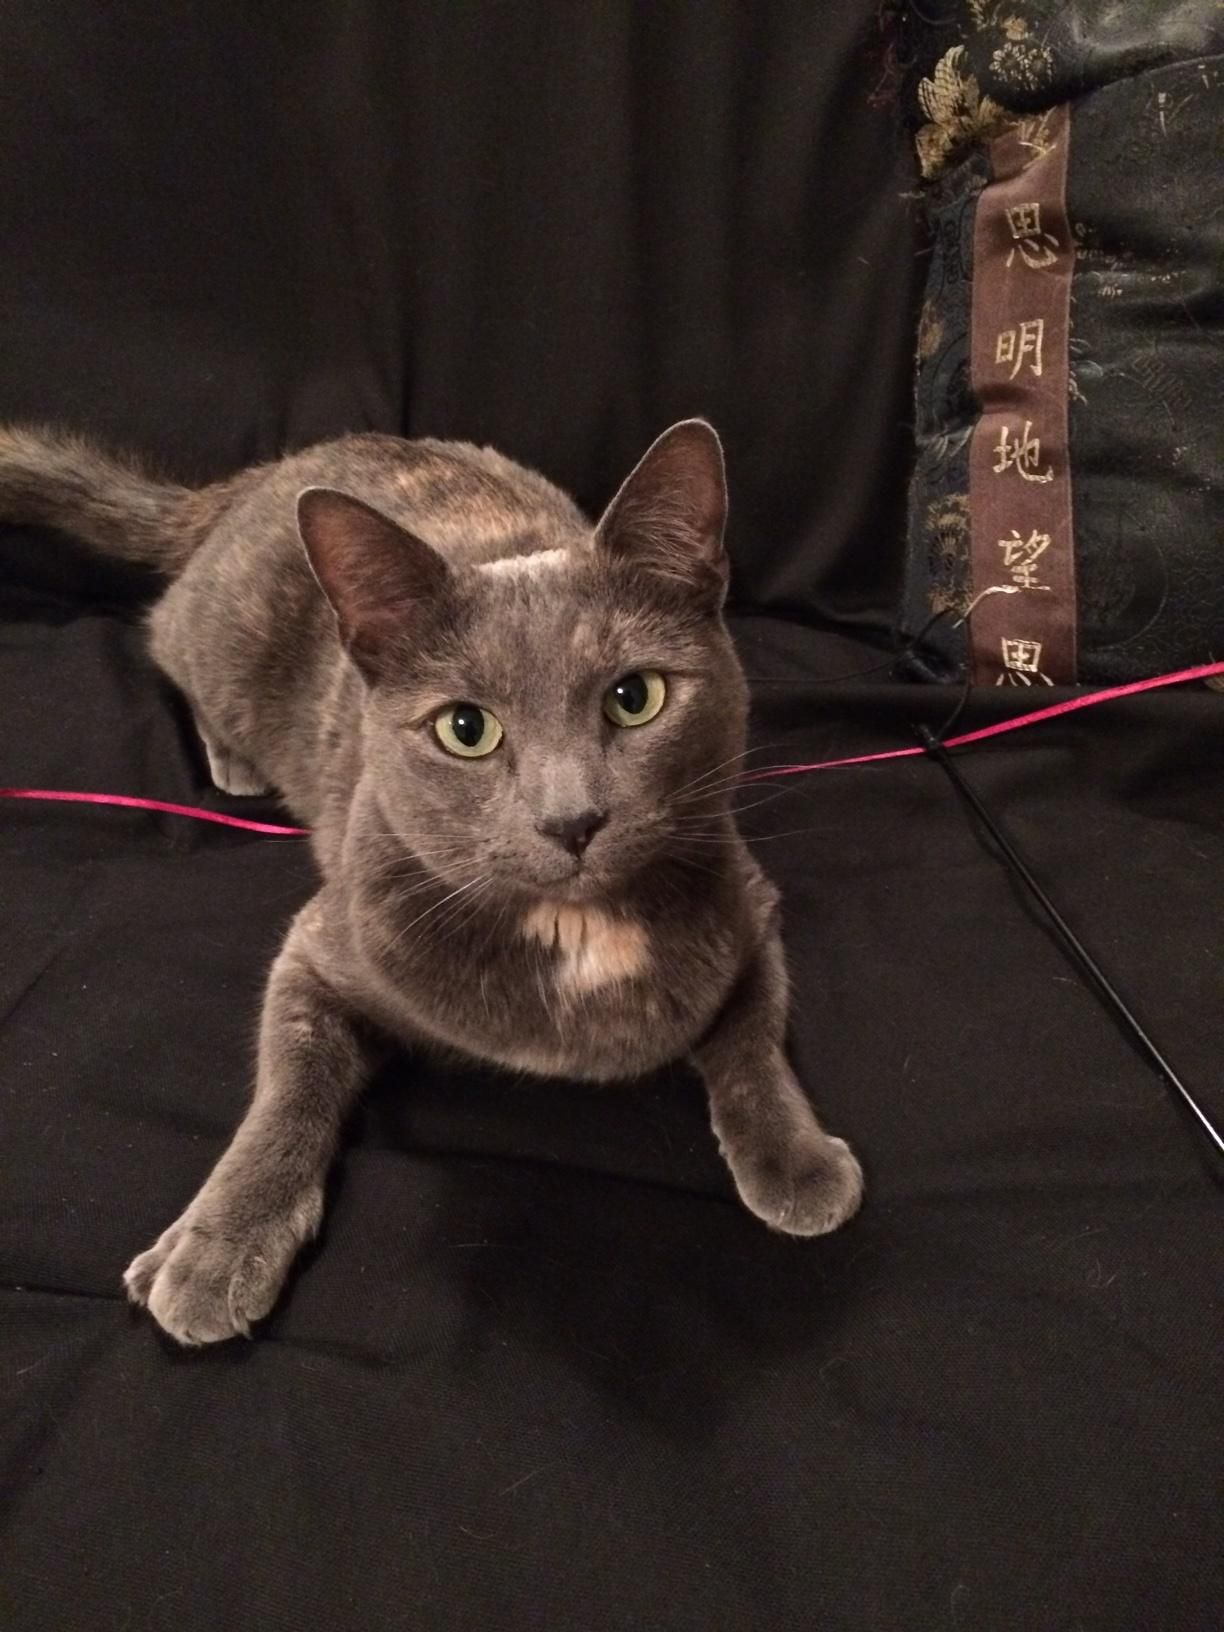 Mila is an adoptable Domestic Short Hairgray searching